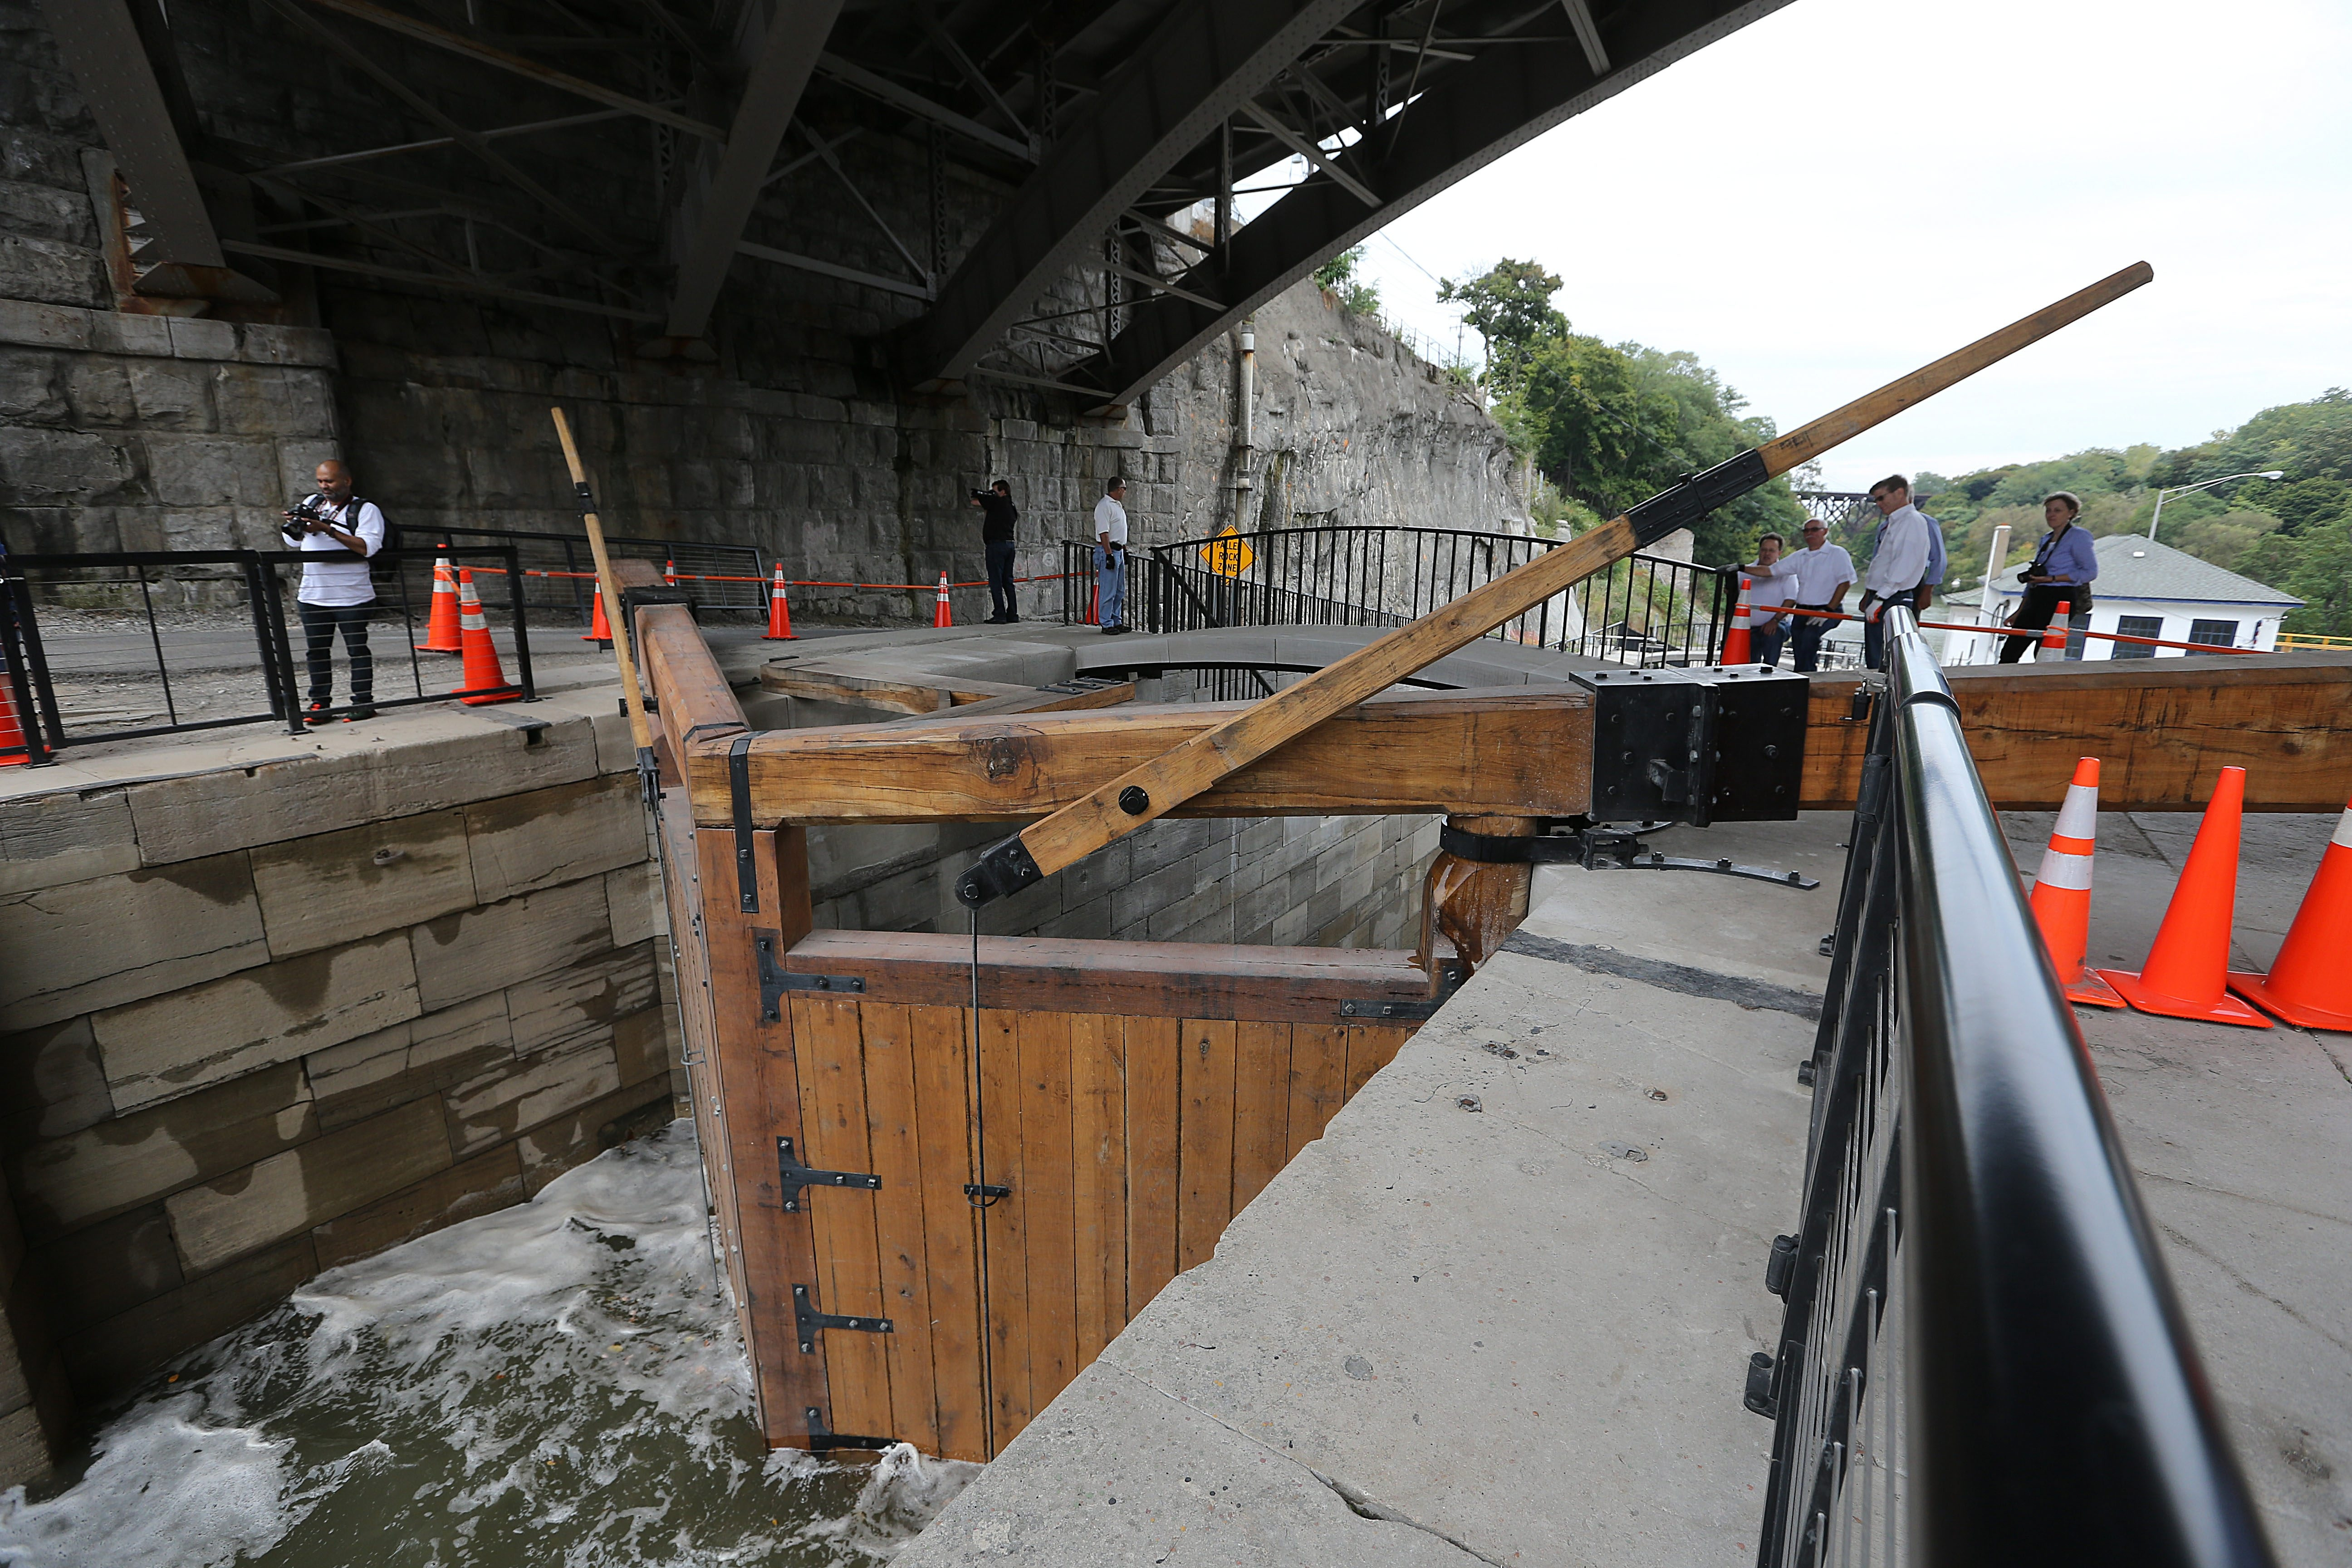 The wooden doors on one of the restored locks, during a Flight of Five Dedication Ceremony at the Lockport Locks in October. The ceremony celebrated the restoration of Locks 69 & 70. (Buffalo News file photo)